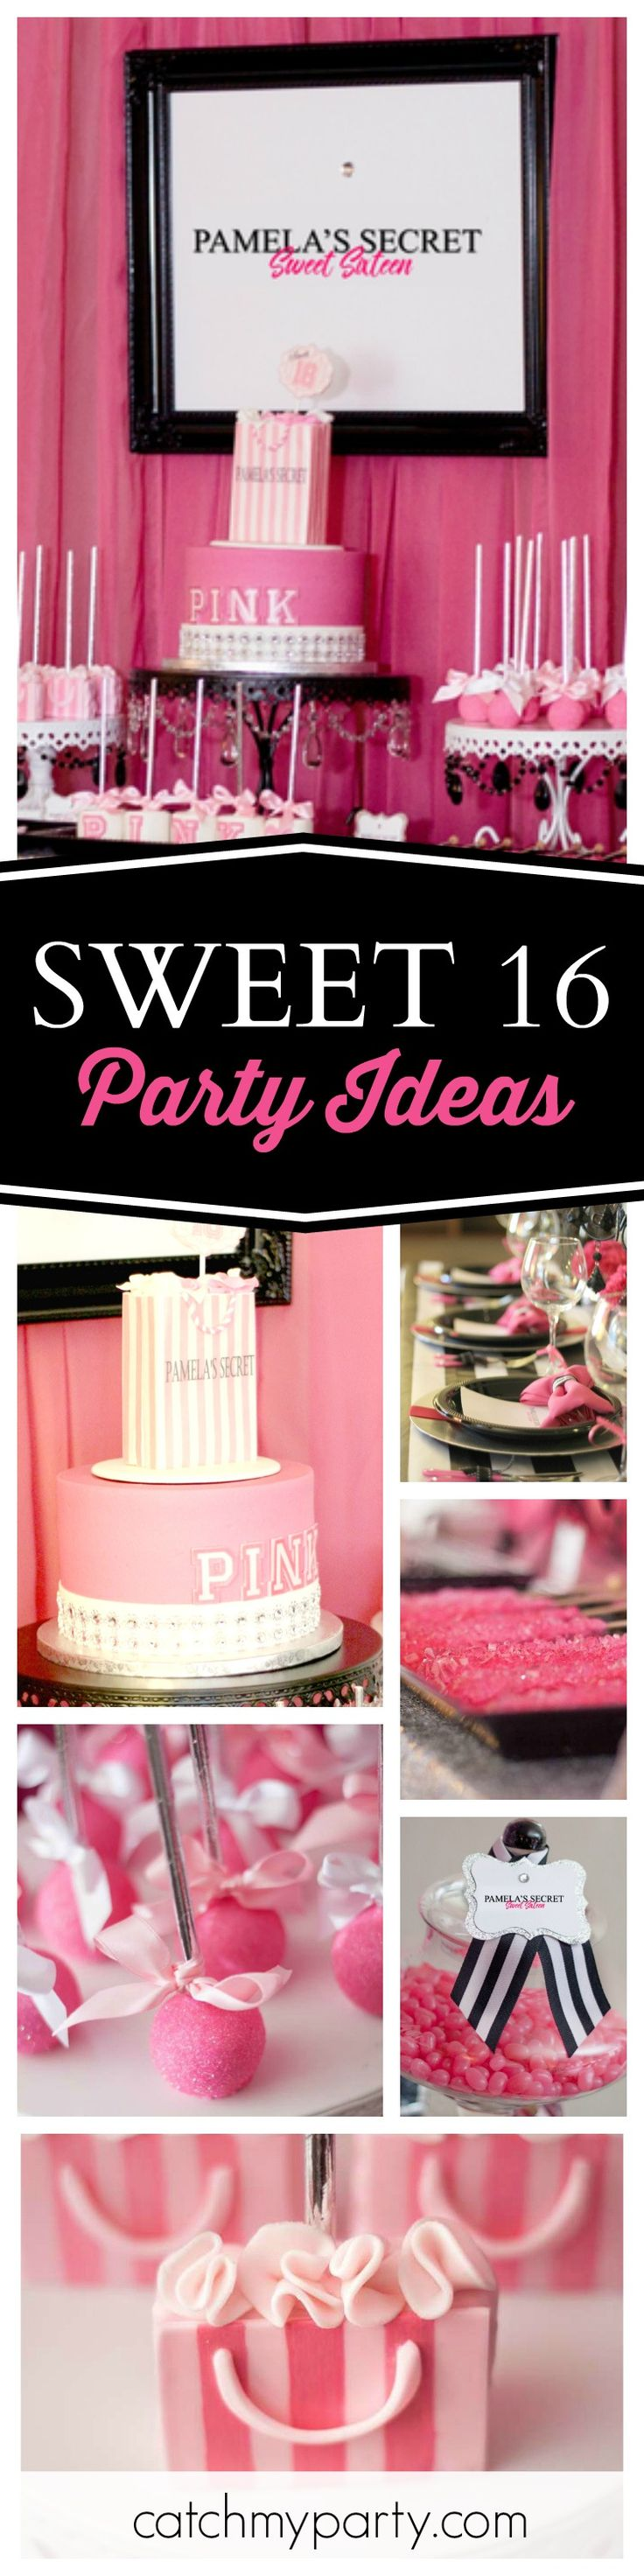 best 25+ pink black ideas on pinterest | pink closet, winter wear